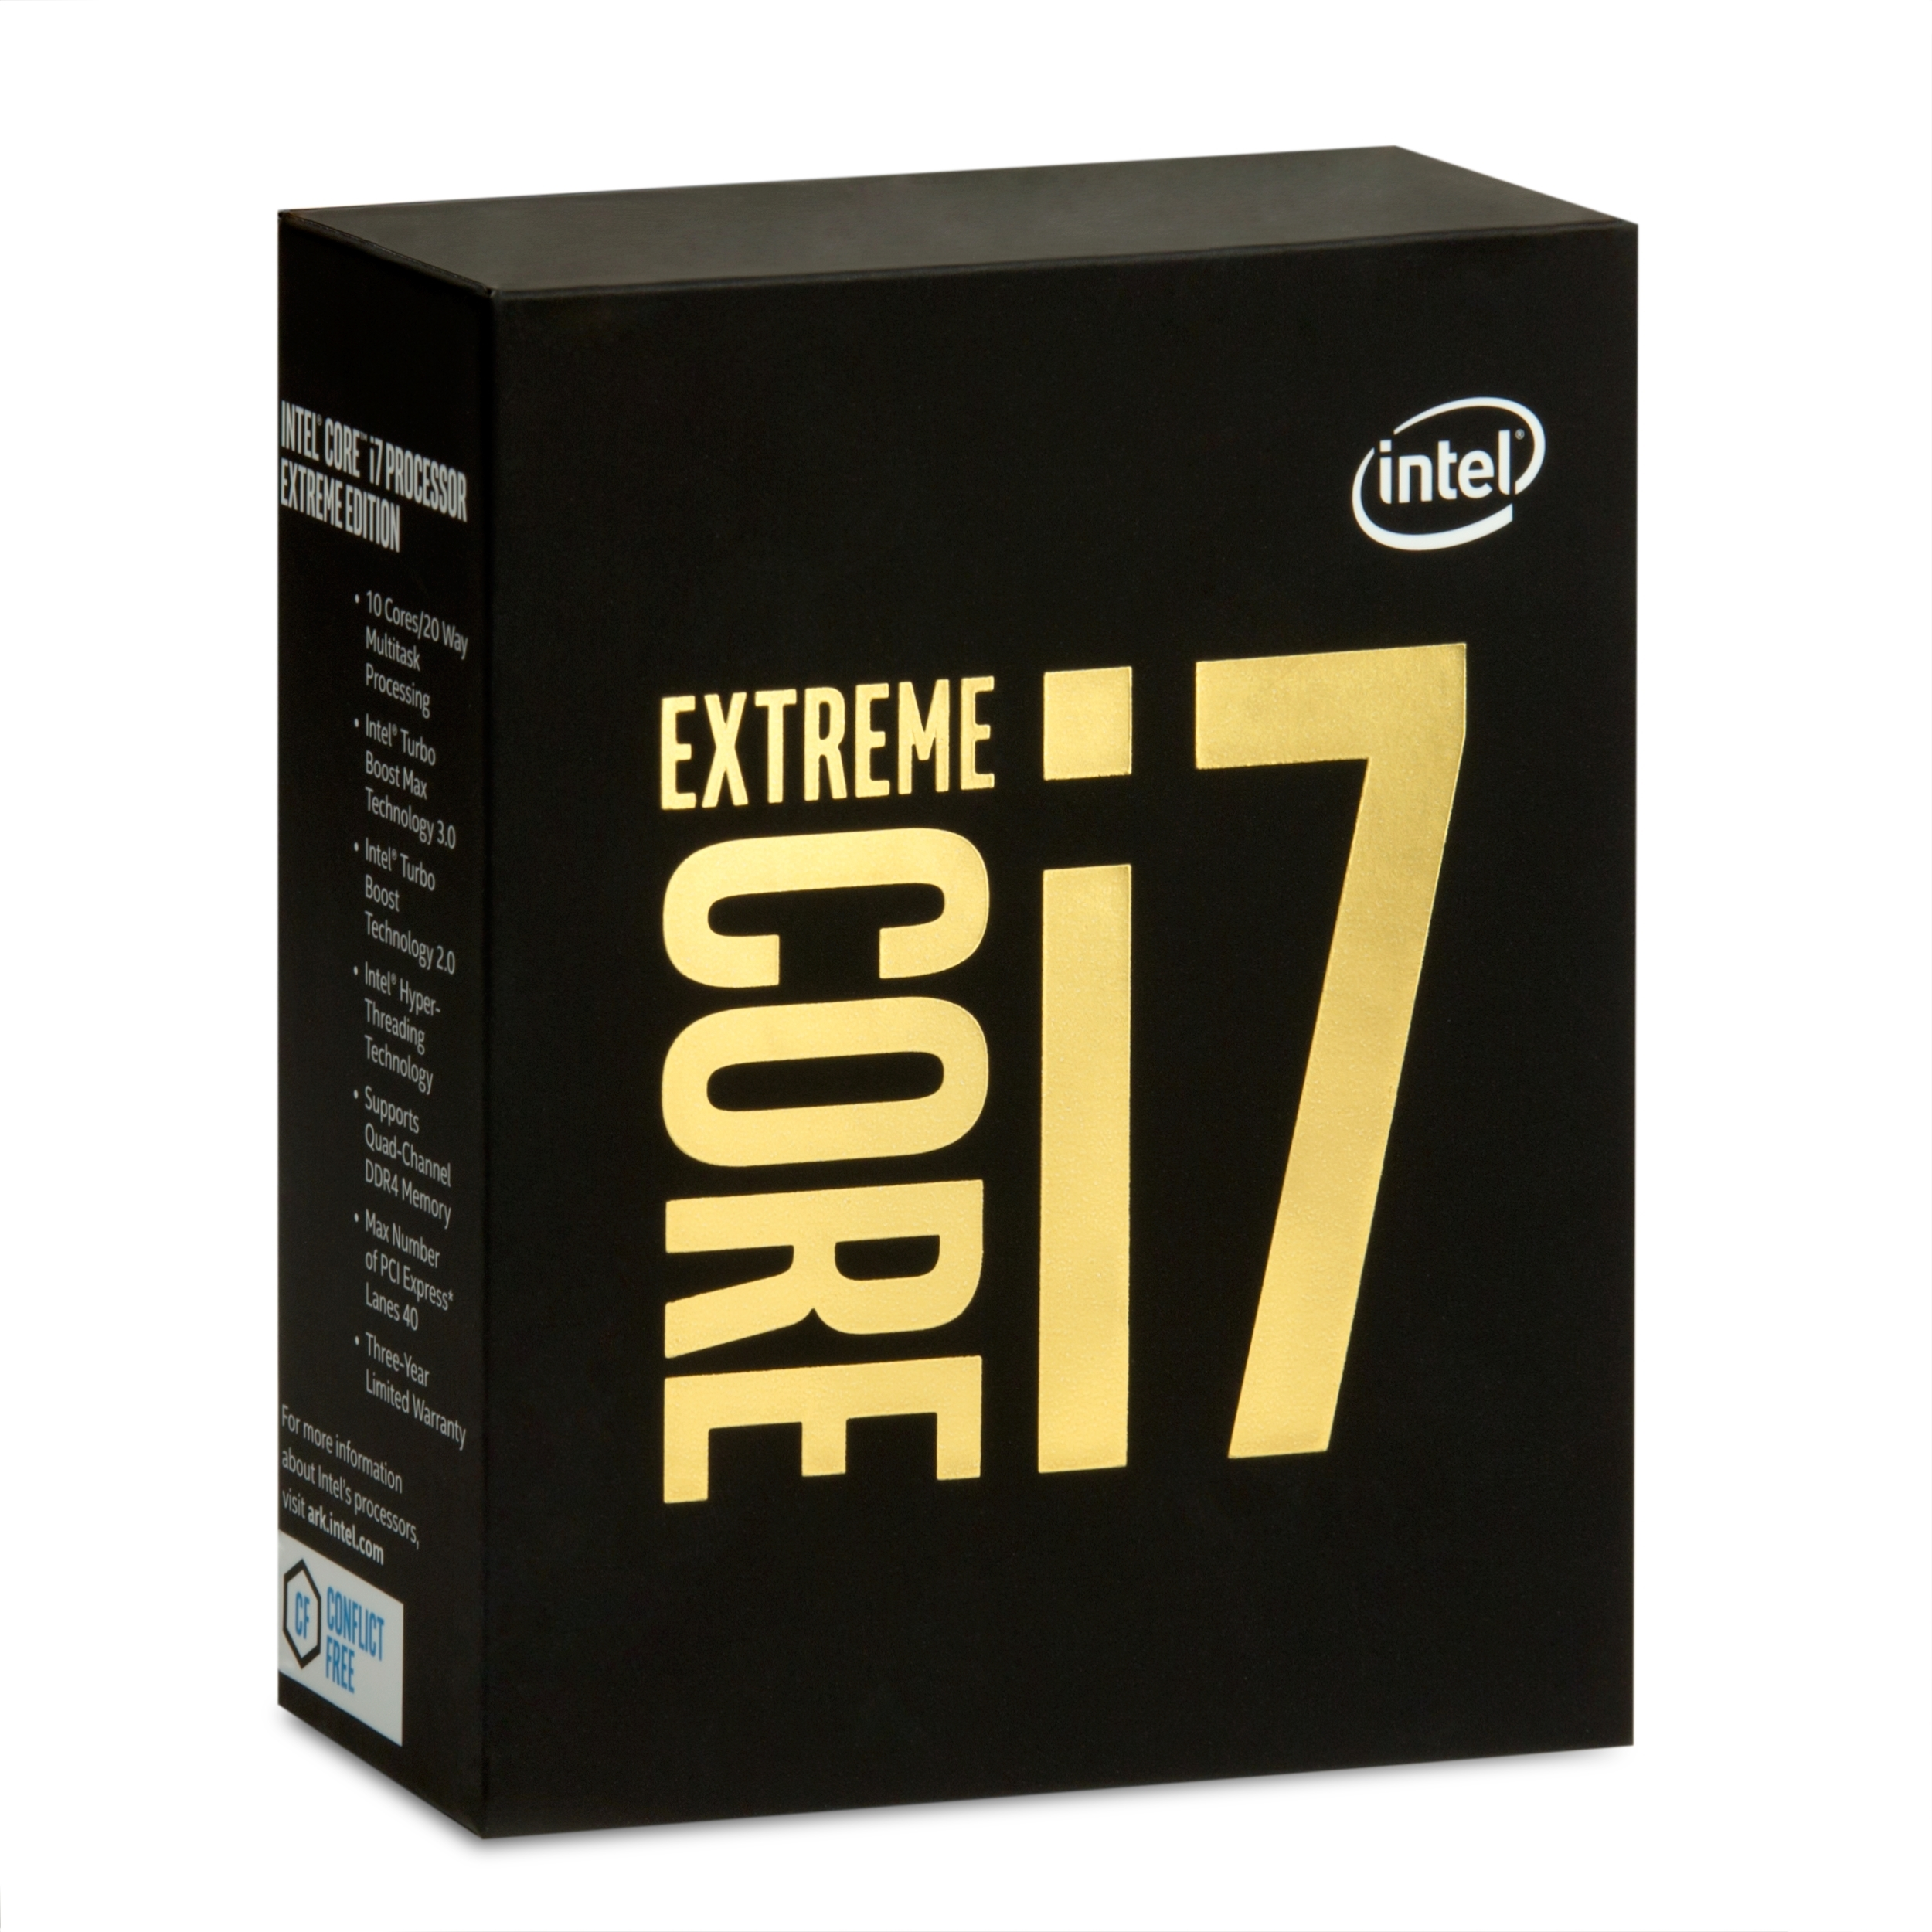 Intel core i7-980x six-core processor extreme edition review.